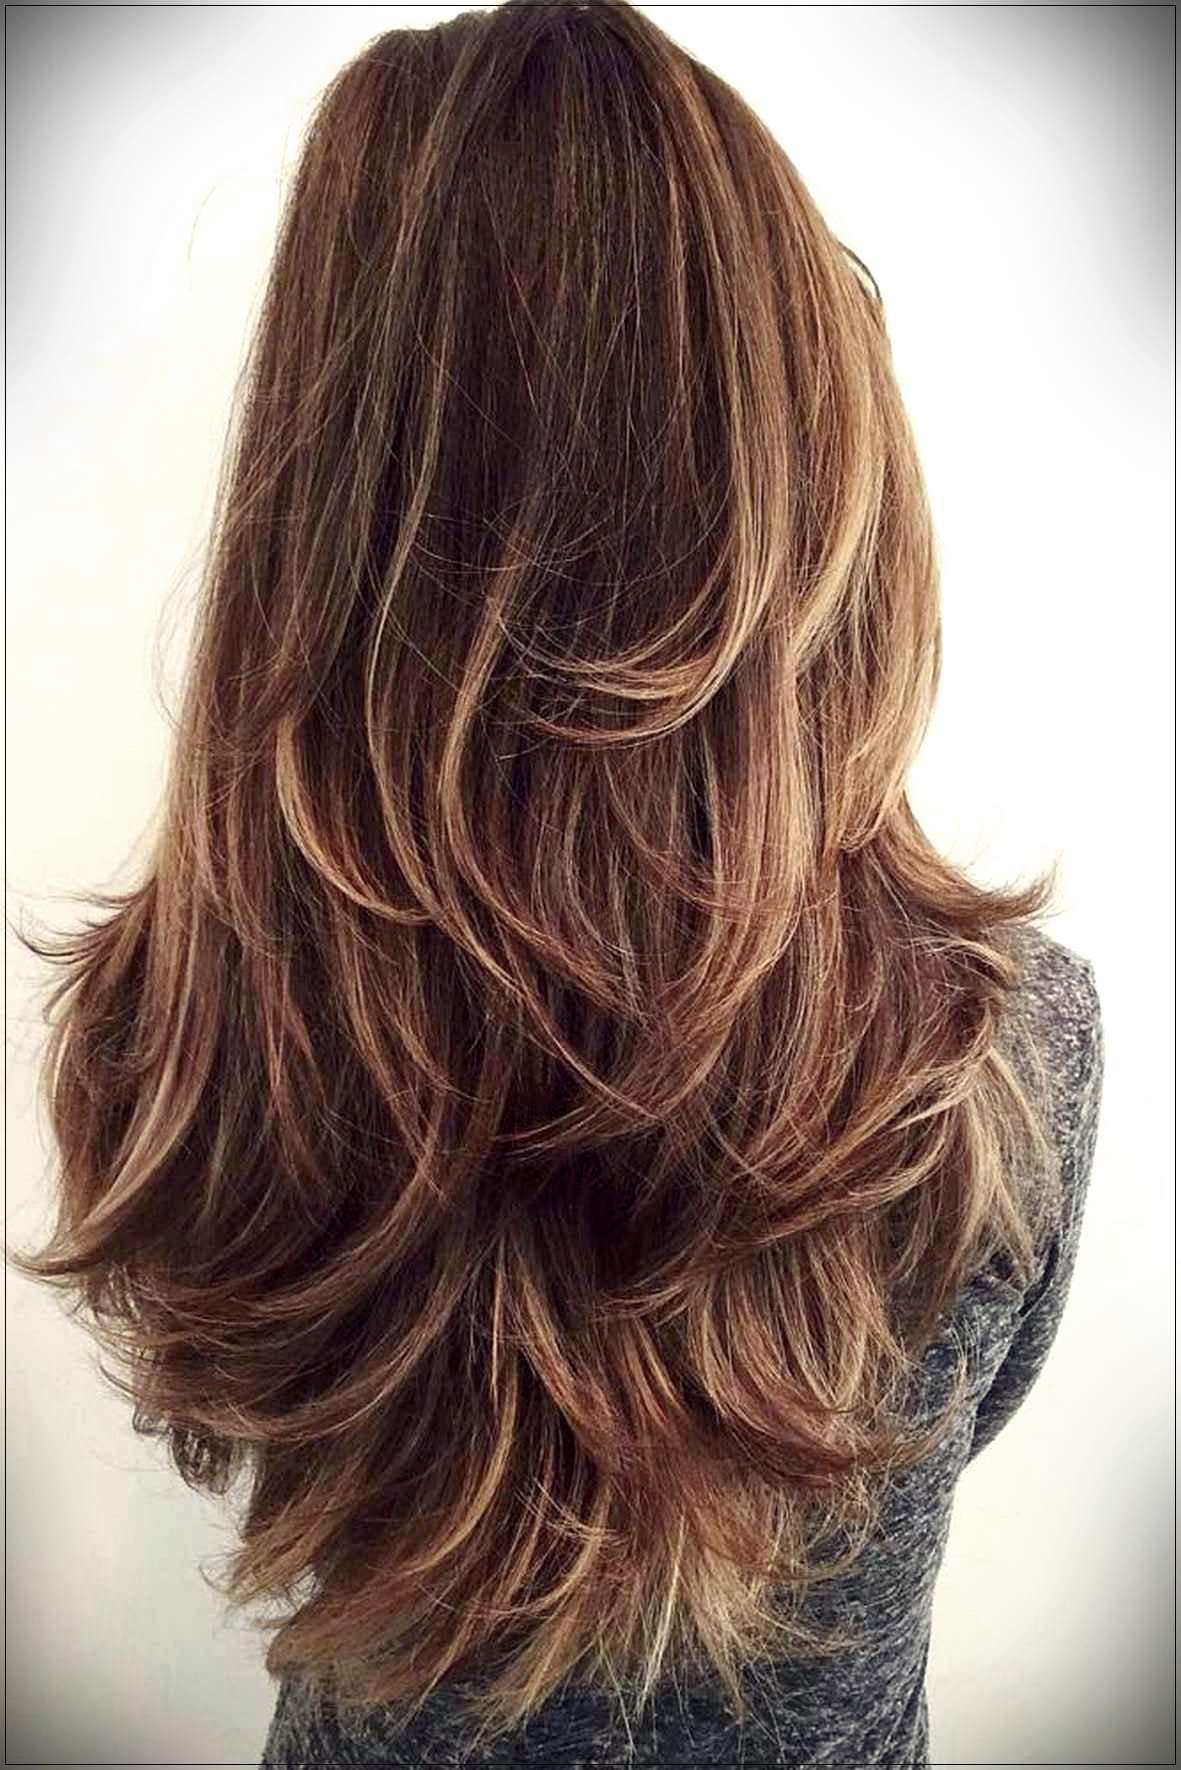 Trendy Haircut Waterfall 12: Ideas for the Elegant Image